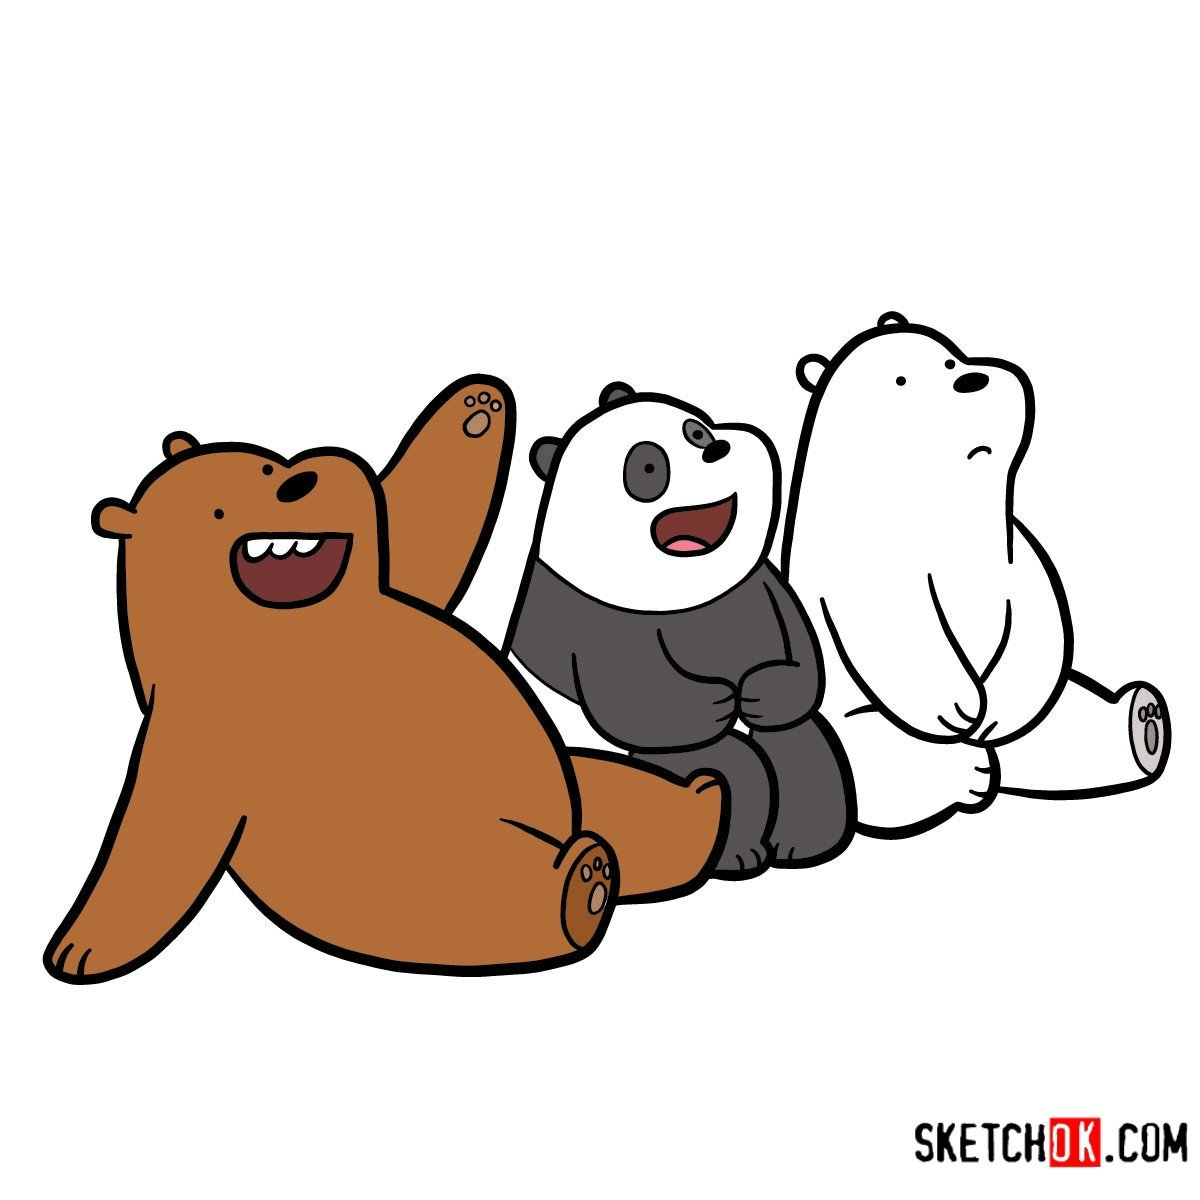 How to draw all three bears together | We Bare Bears - coloring